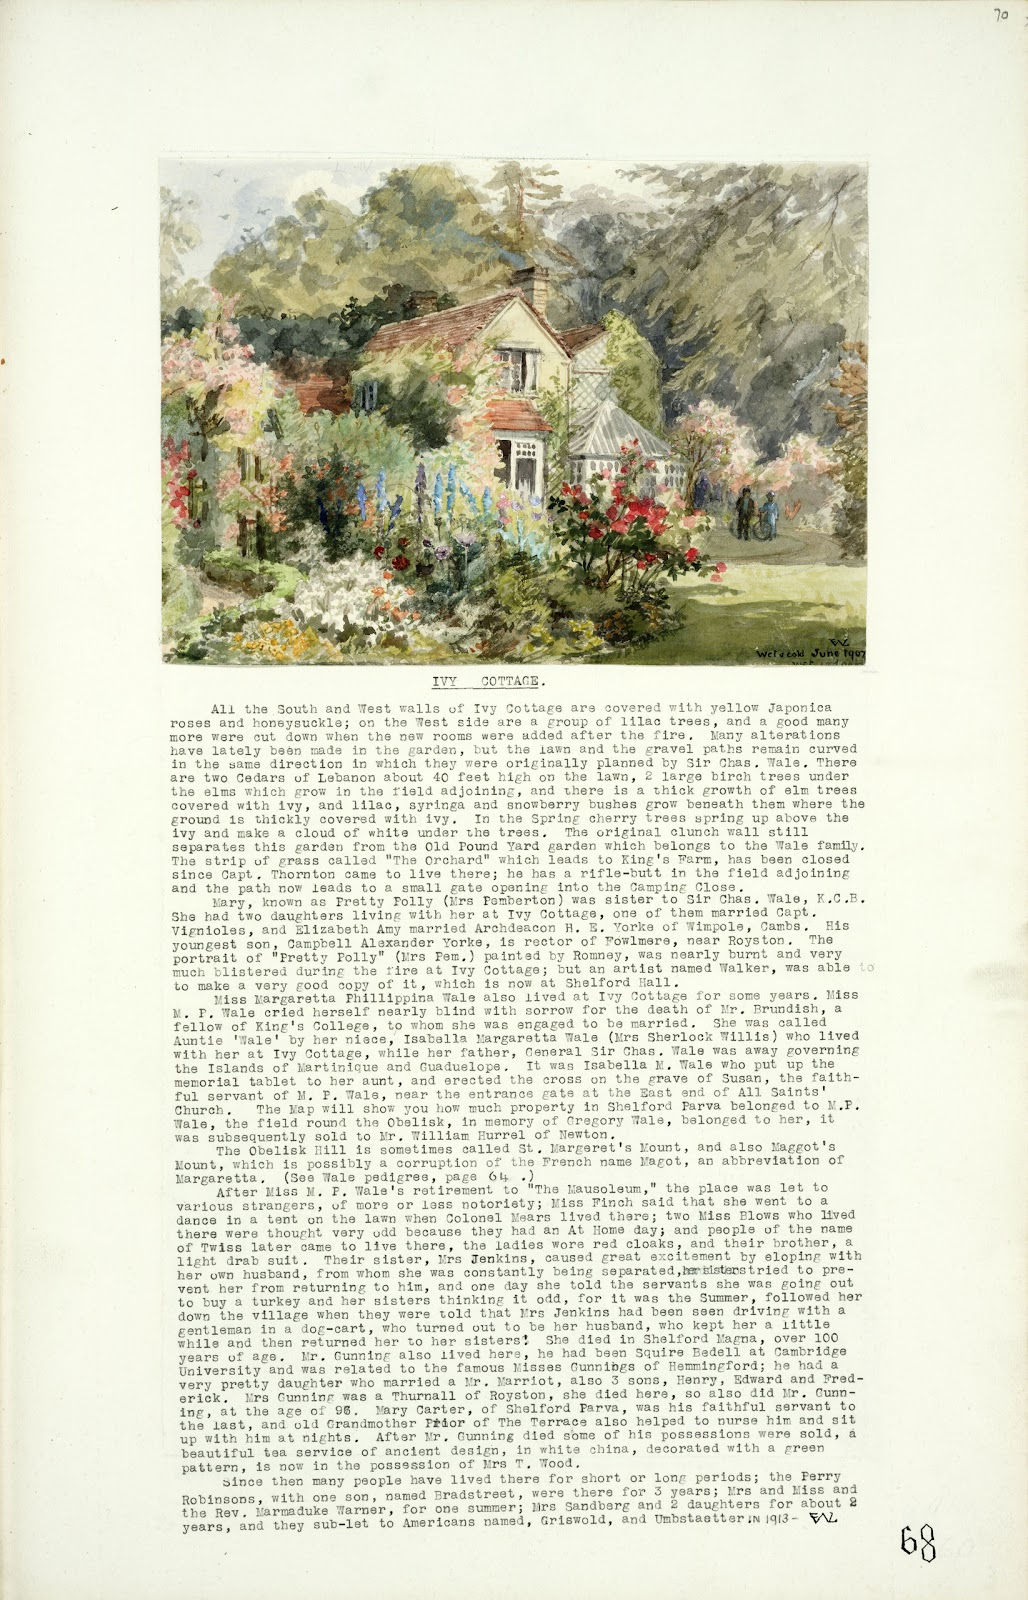 A Record of Shelford Parva by Fanny Wale P68 fo. 70, page 68: At the top of the page is a coloured watercolour of Ivy Cottage and garden, 1907, with long description of it and its inhabitants. [fo.55, with mount H]